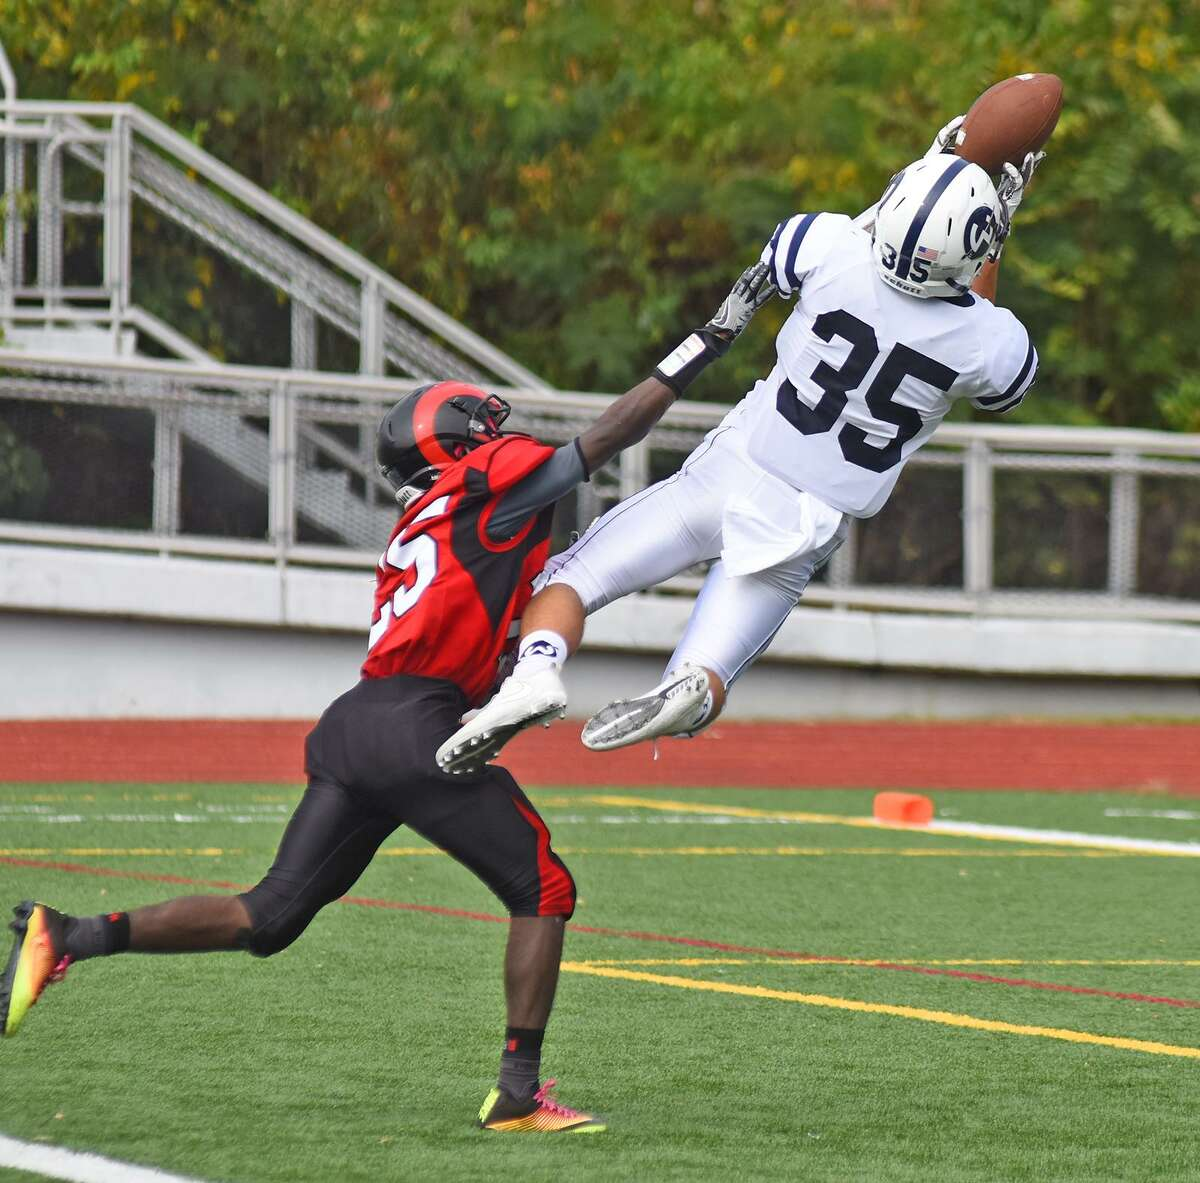 Wilton's Drew Herlyn goes airborne in an effort to make a catch as Central's Jean Desir defends Saturday.